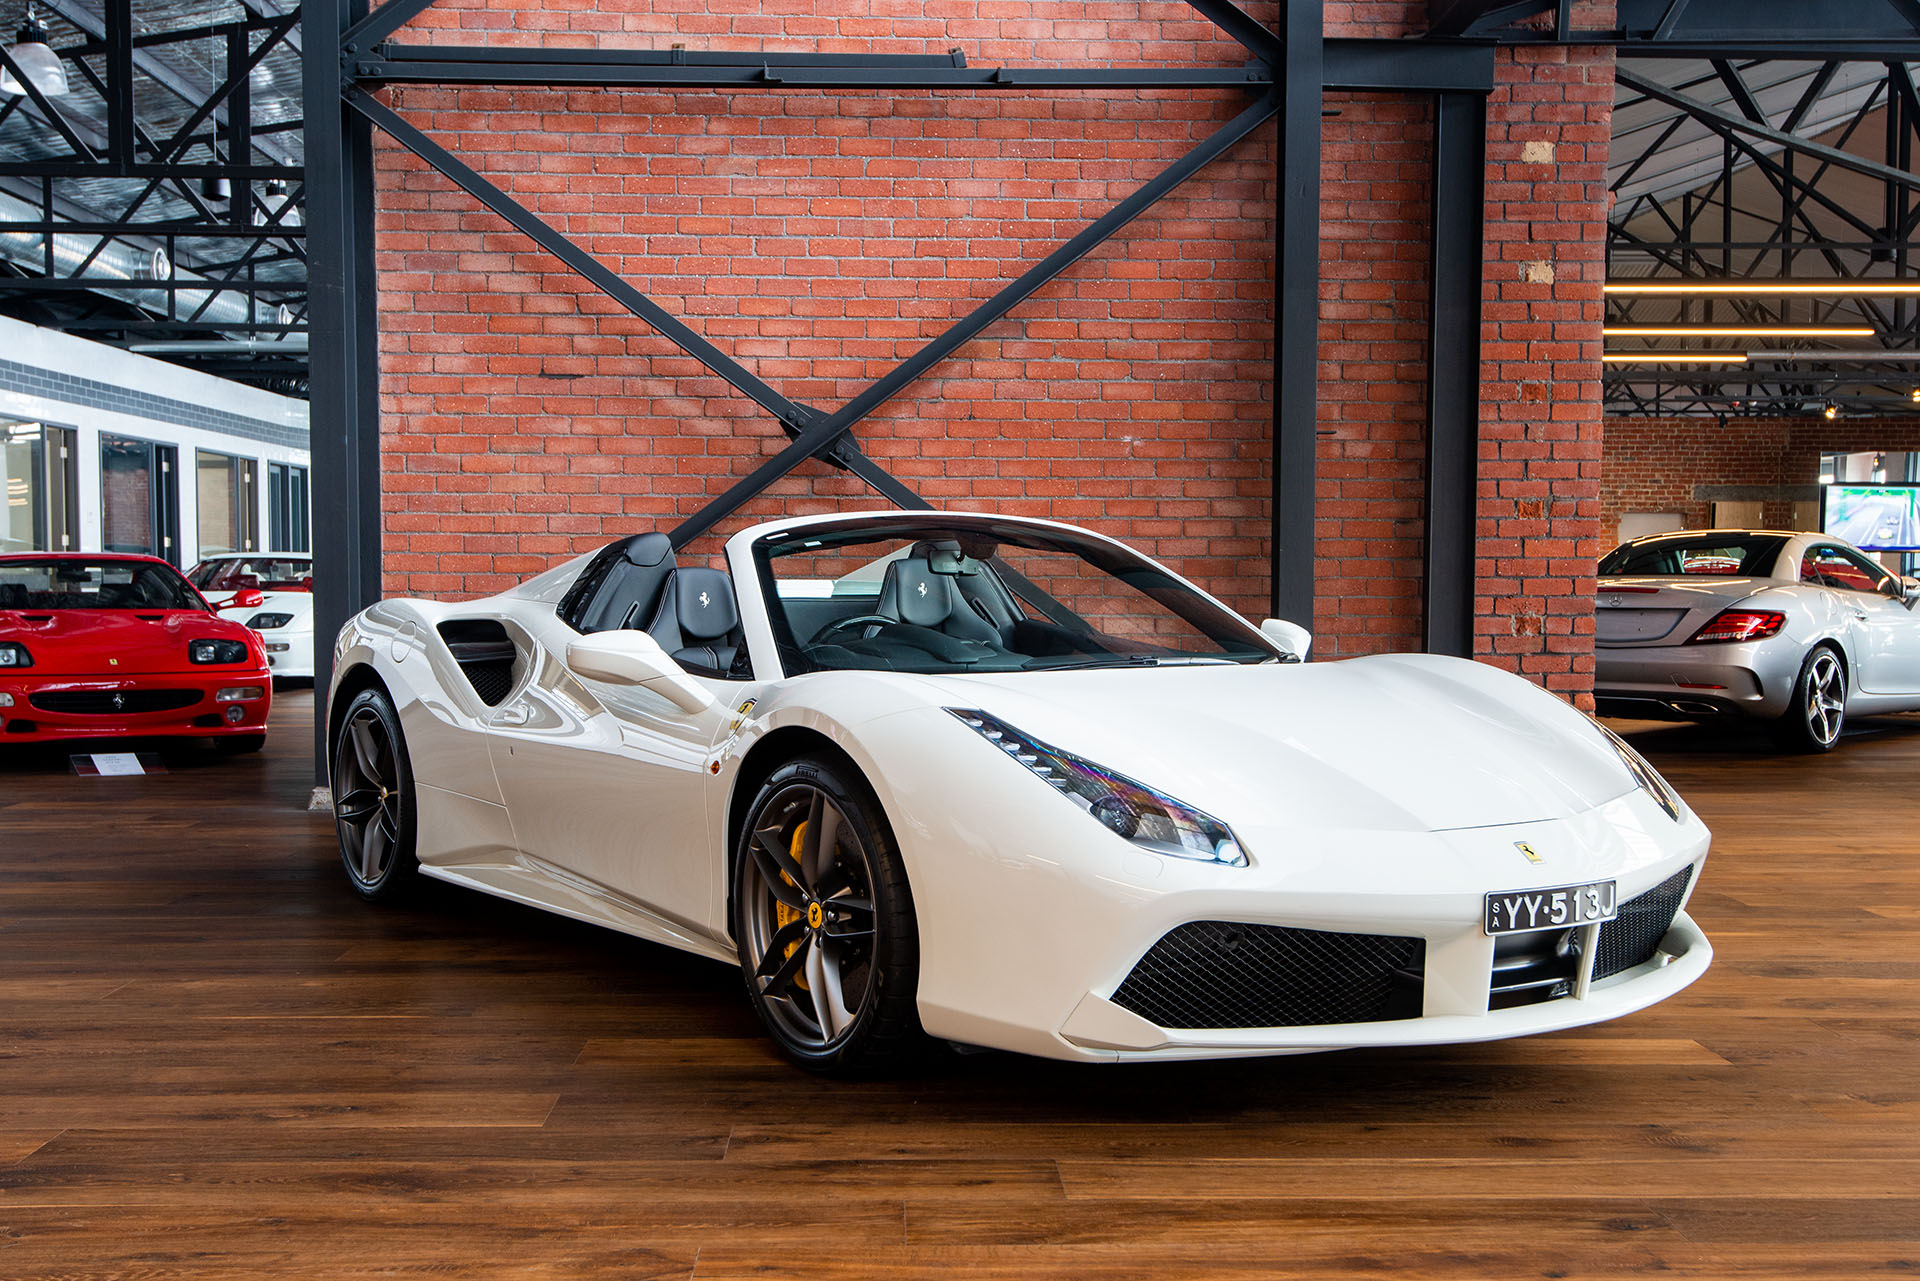 2016 Ferrari 488 Spider Richmonds Classic And Prestige Cars Storage And Sales Adelaide Australia